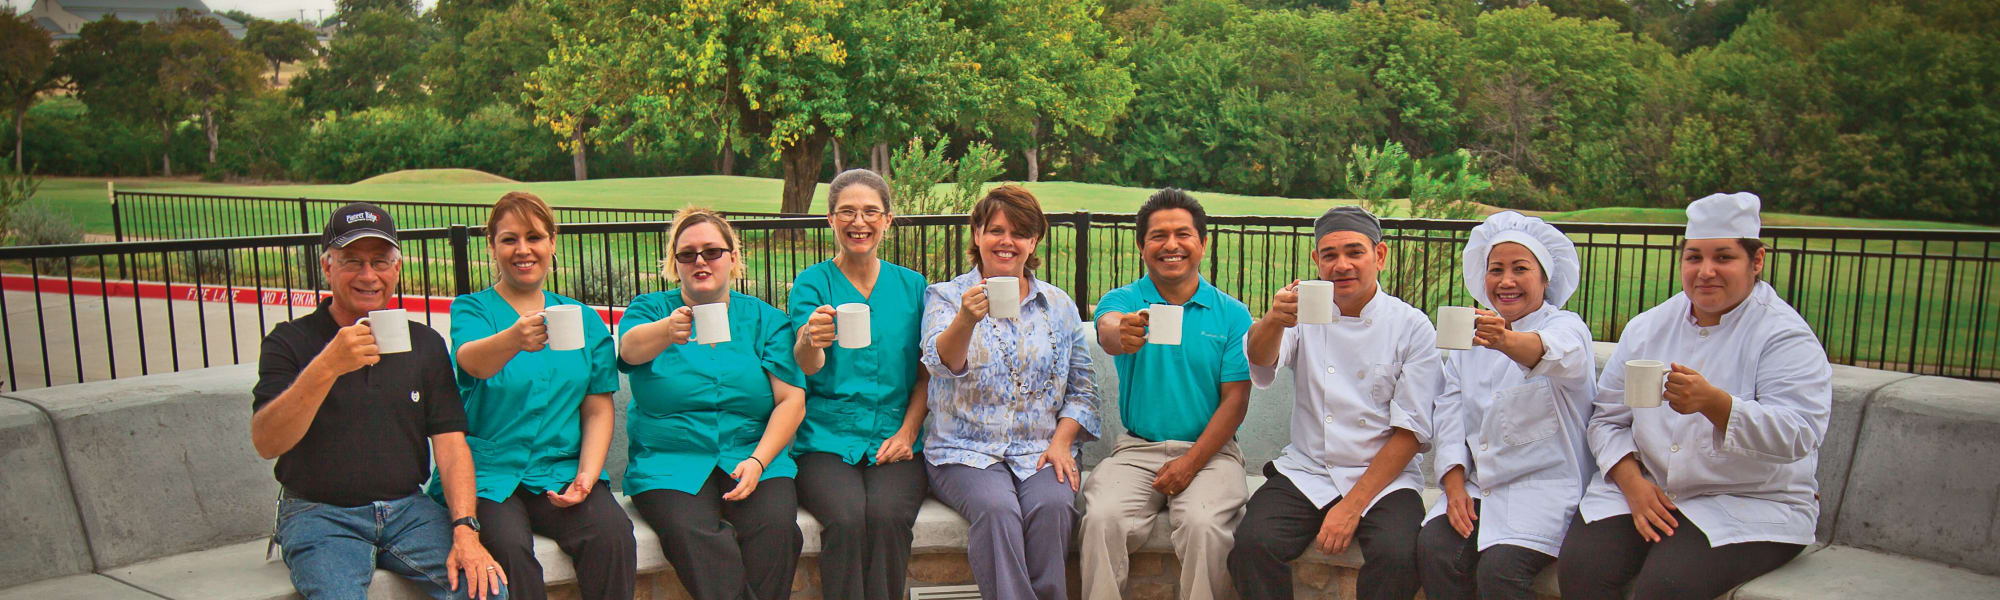 Careers opportunities at Alexis Estates Gracious Retirement Living in Allen, Texas